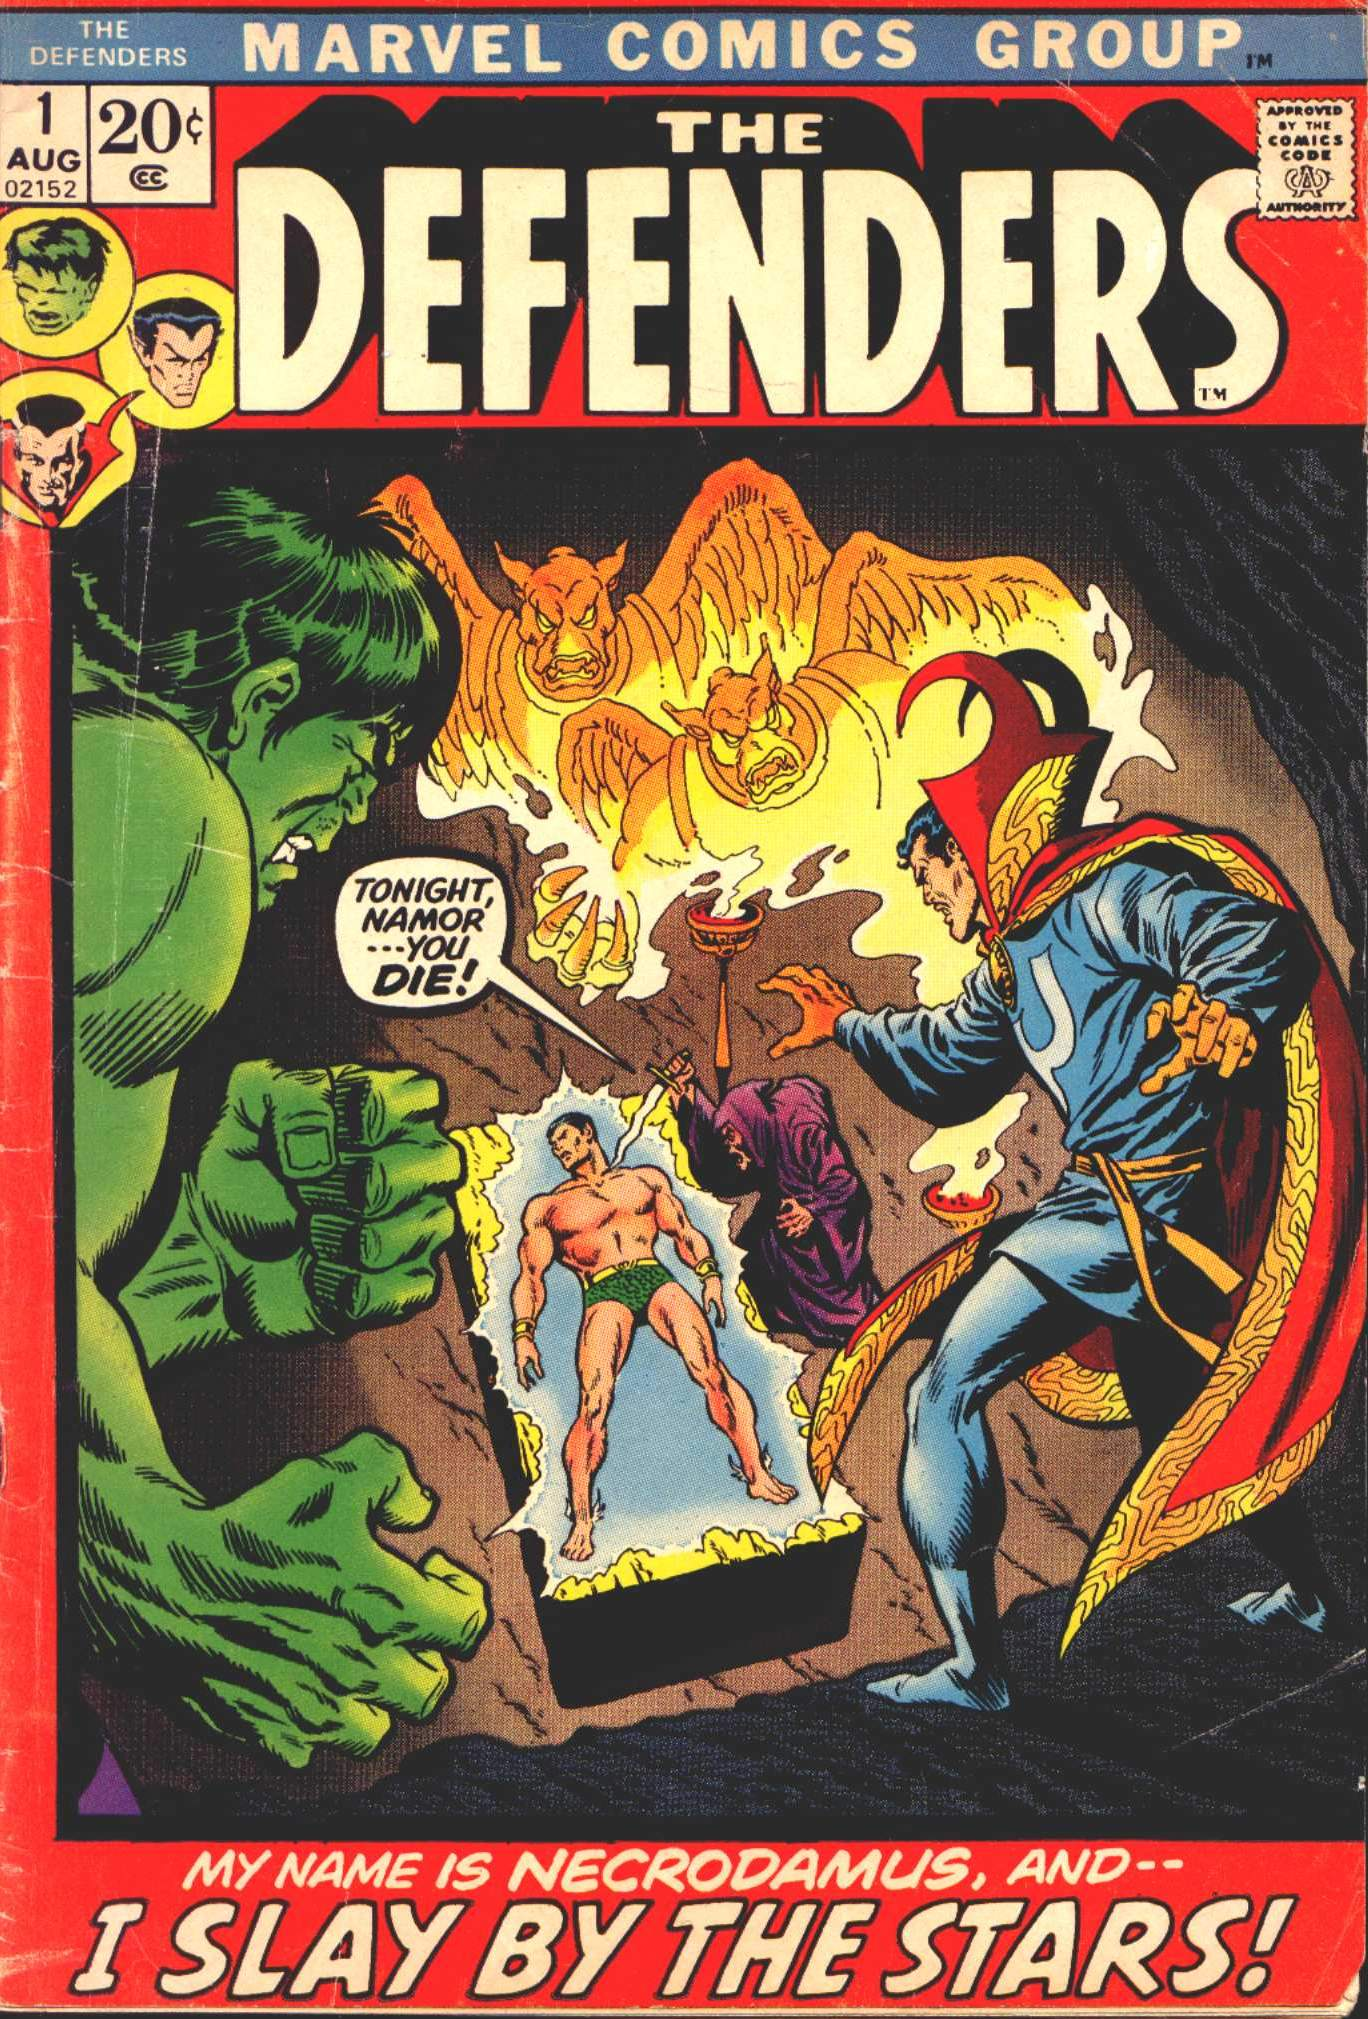 Defenders (1972) #1, cover penciled by Sal Buscema & inked by Jim Mooney.